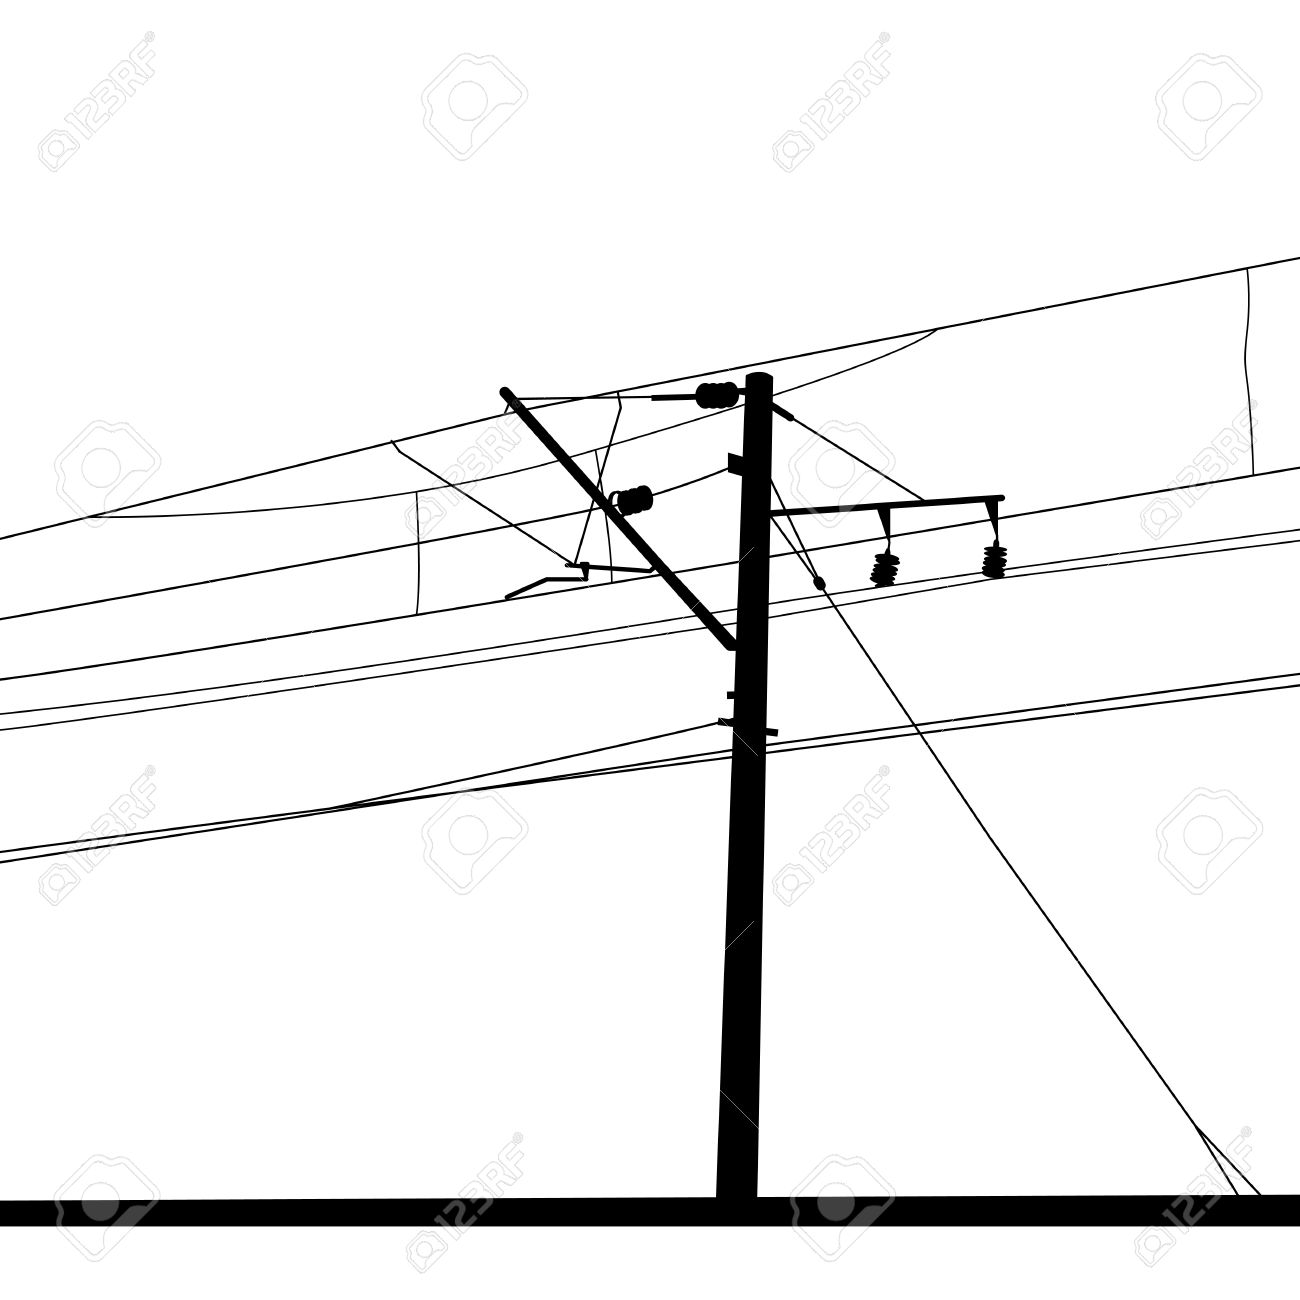 Overhead Electrical Wire